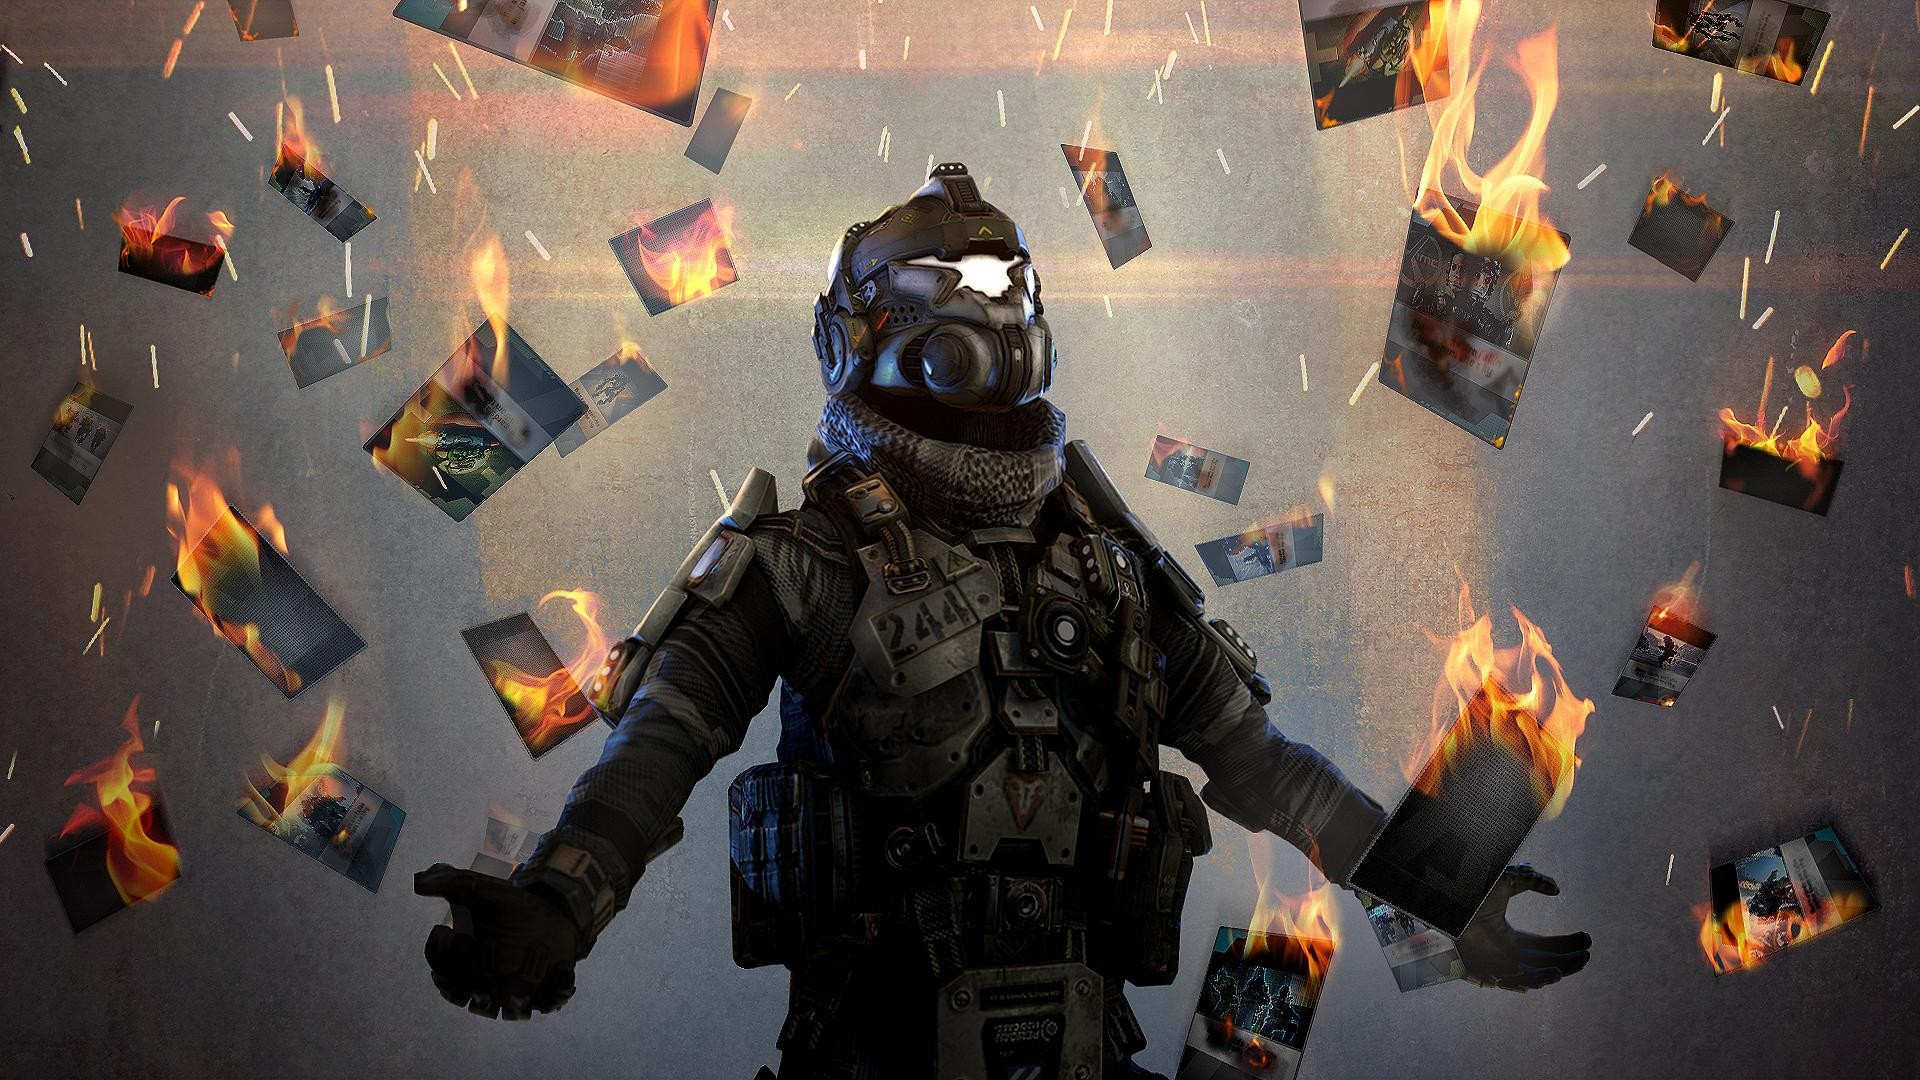 Titanfall wallpaper download free awesome full hd wallpapers for desktop computers and - Titanfall 2 wallpaper hd ...